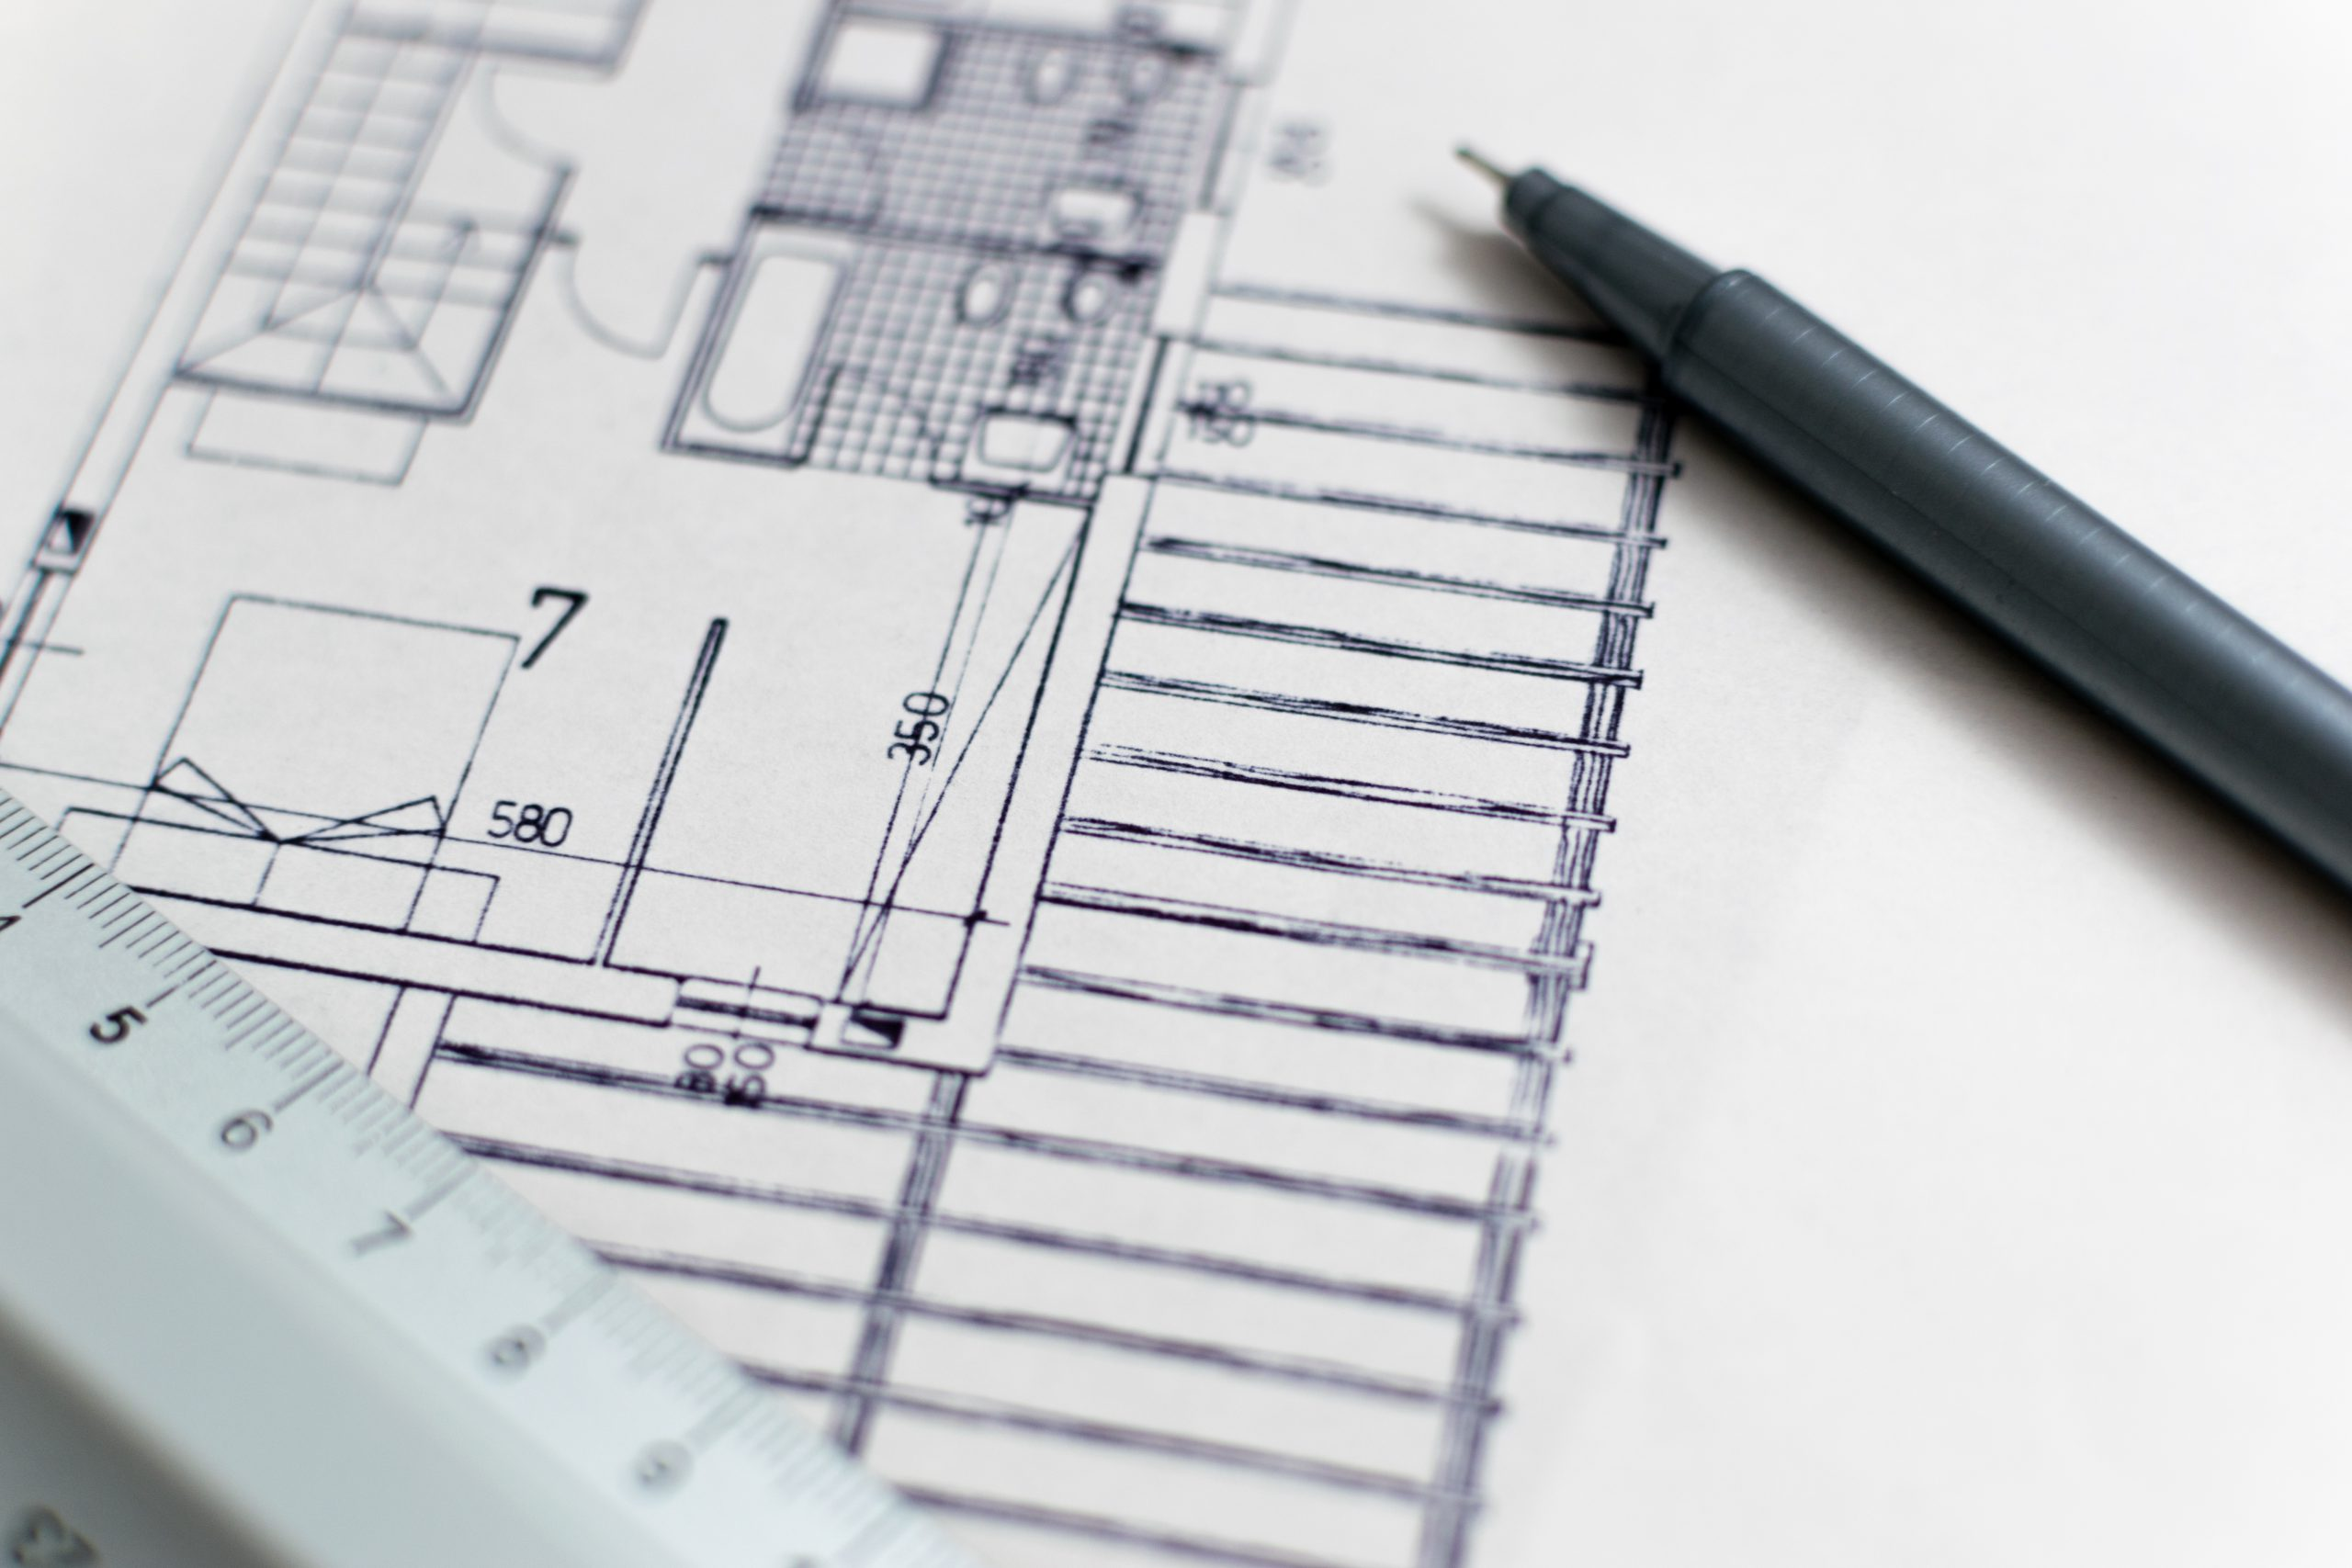 Architecture blueprint with pen and ruler edsl architecture blueprint with pen and ruler malvernweather Images